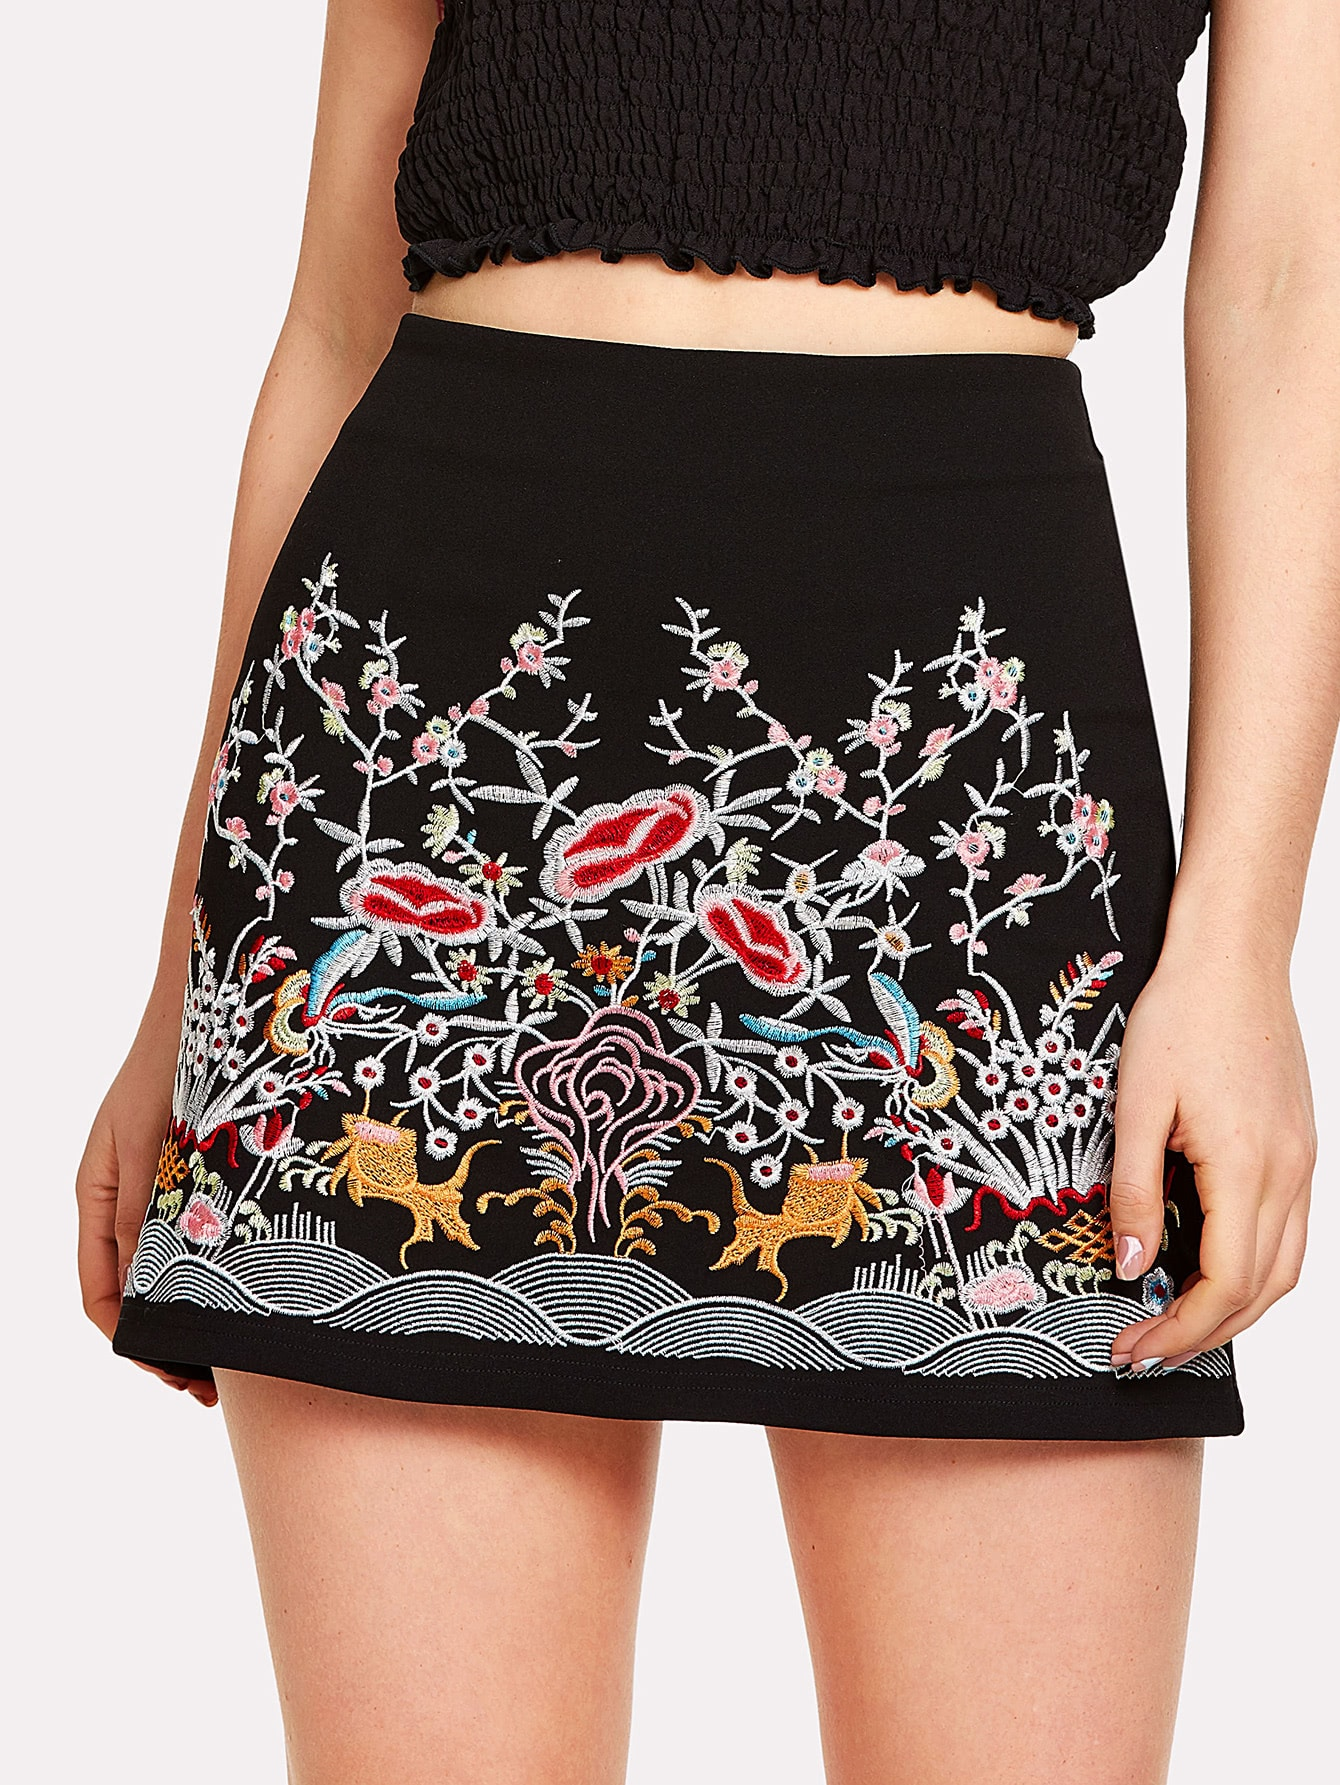 Flower Embroidery Zip Up Skirt botanical embroidery zip back skirt